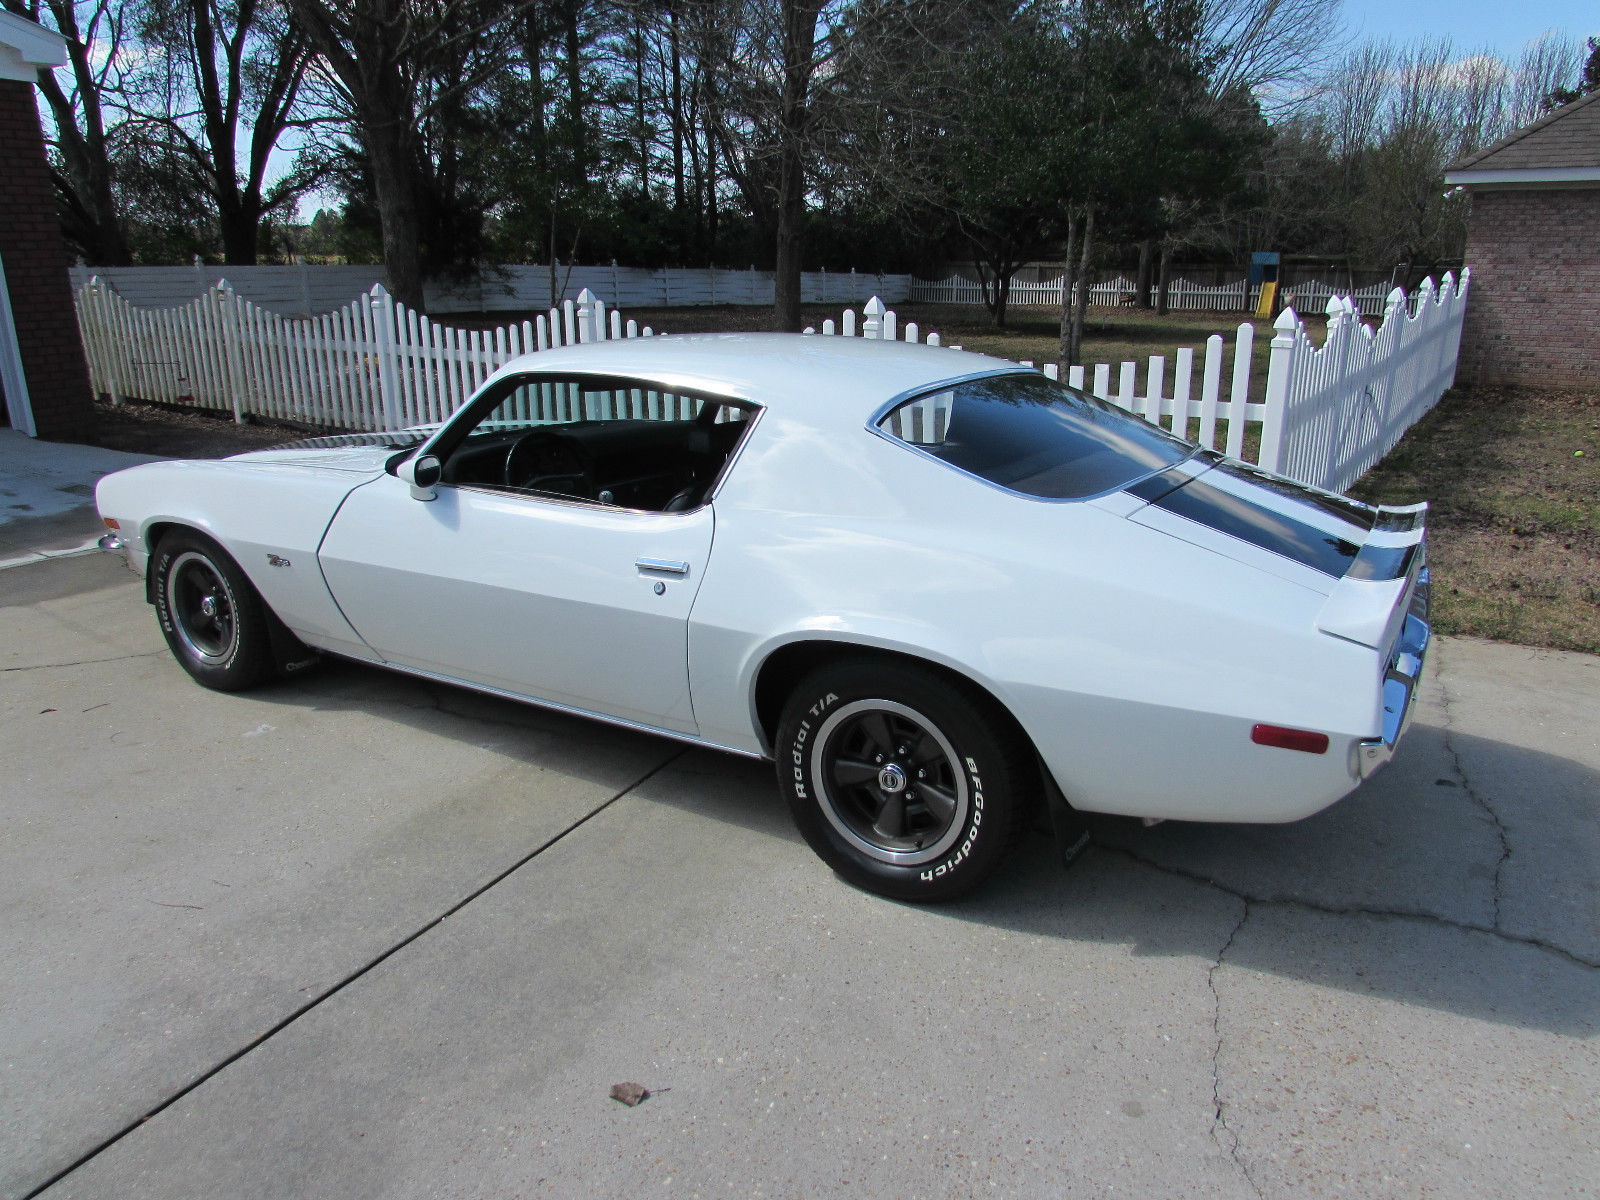 1970 white z28 split bumper camaro clone off frame restoration. Black Bedroom Furniture Sets. Home Design Ideas